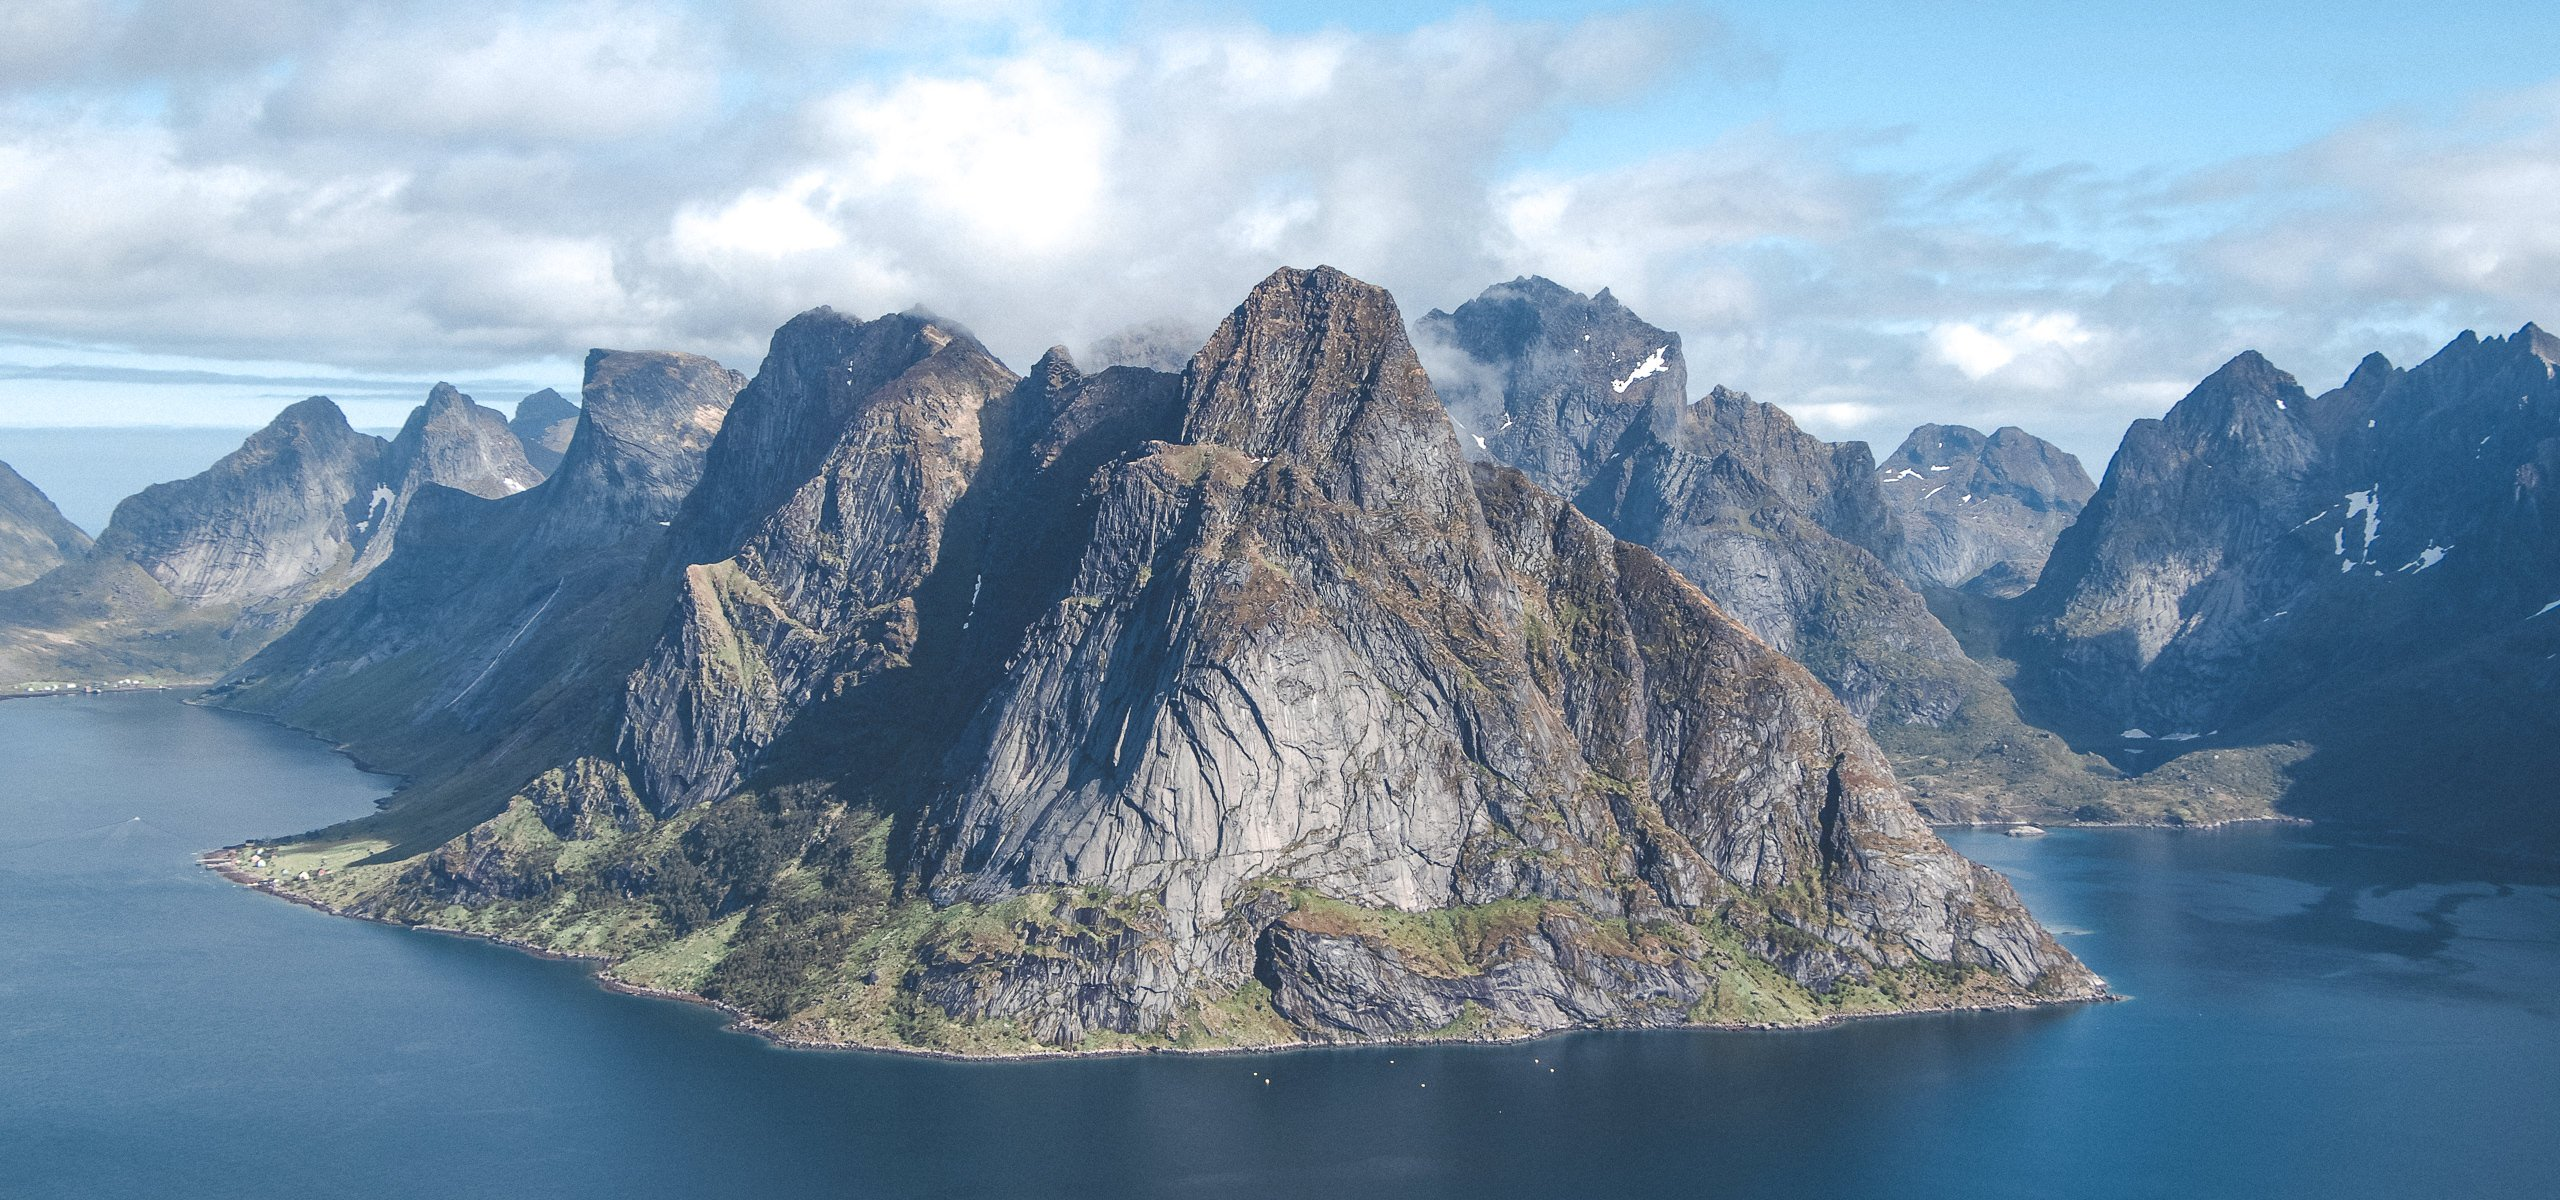 Hiking Reinebringen - the view from the top. Lofoten Islands Norway